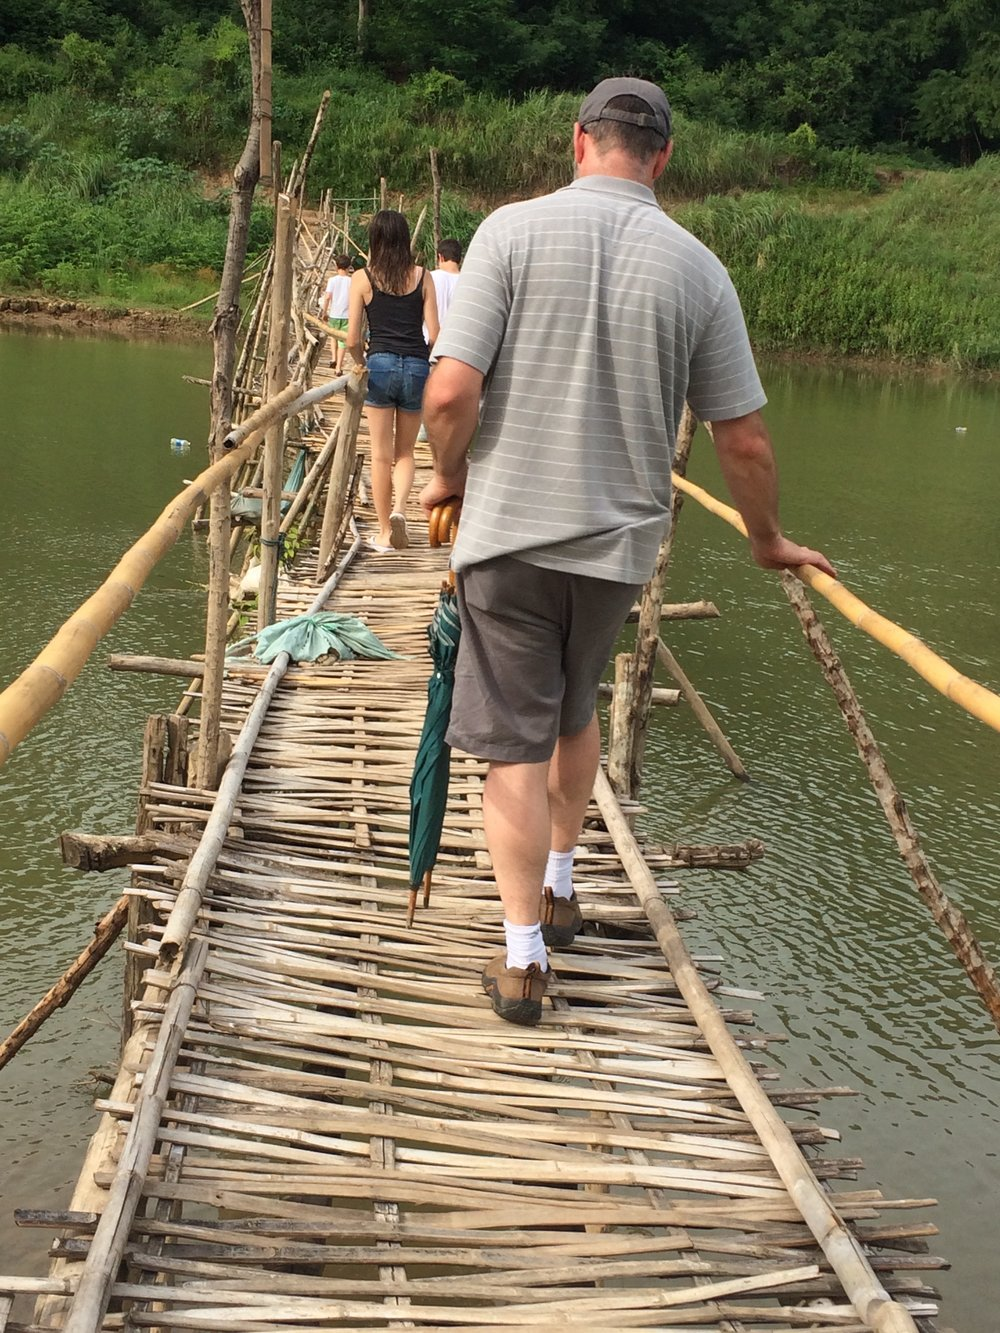 Villagers build this bridge, Mekong knocks it down, they build it again.